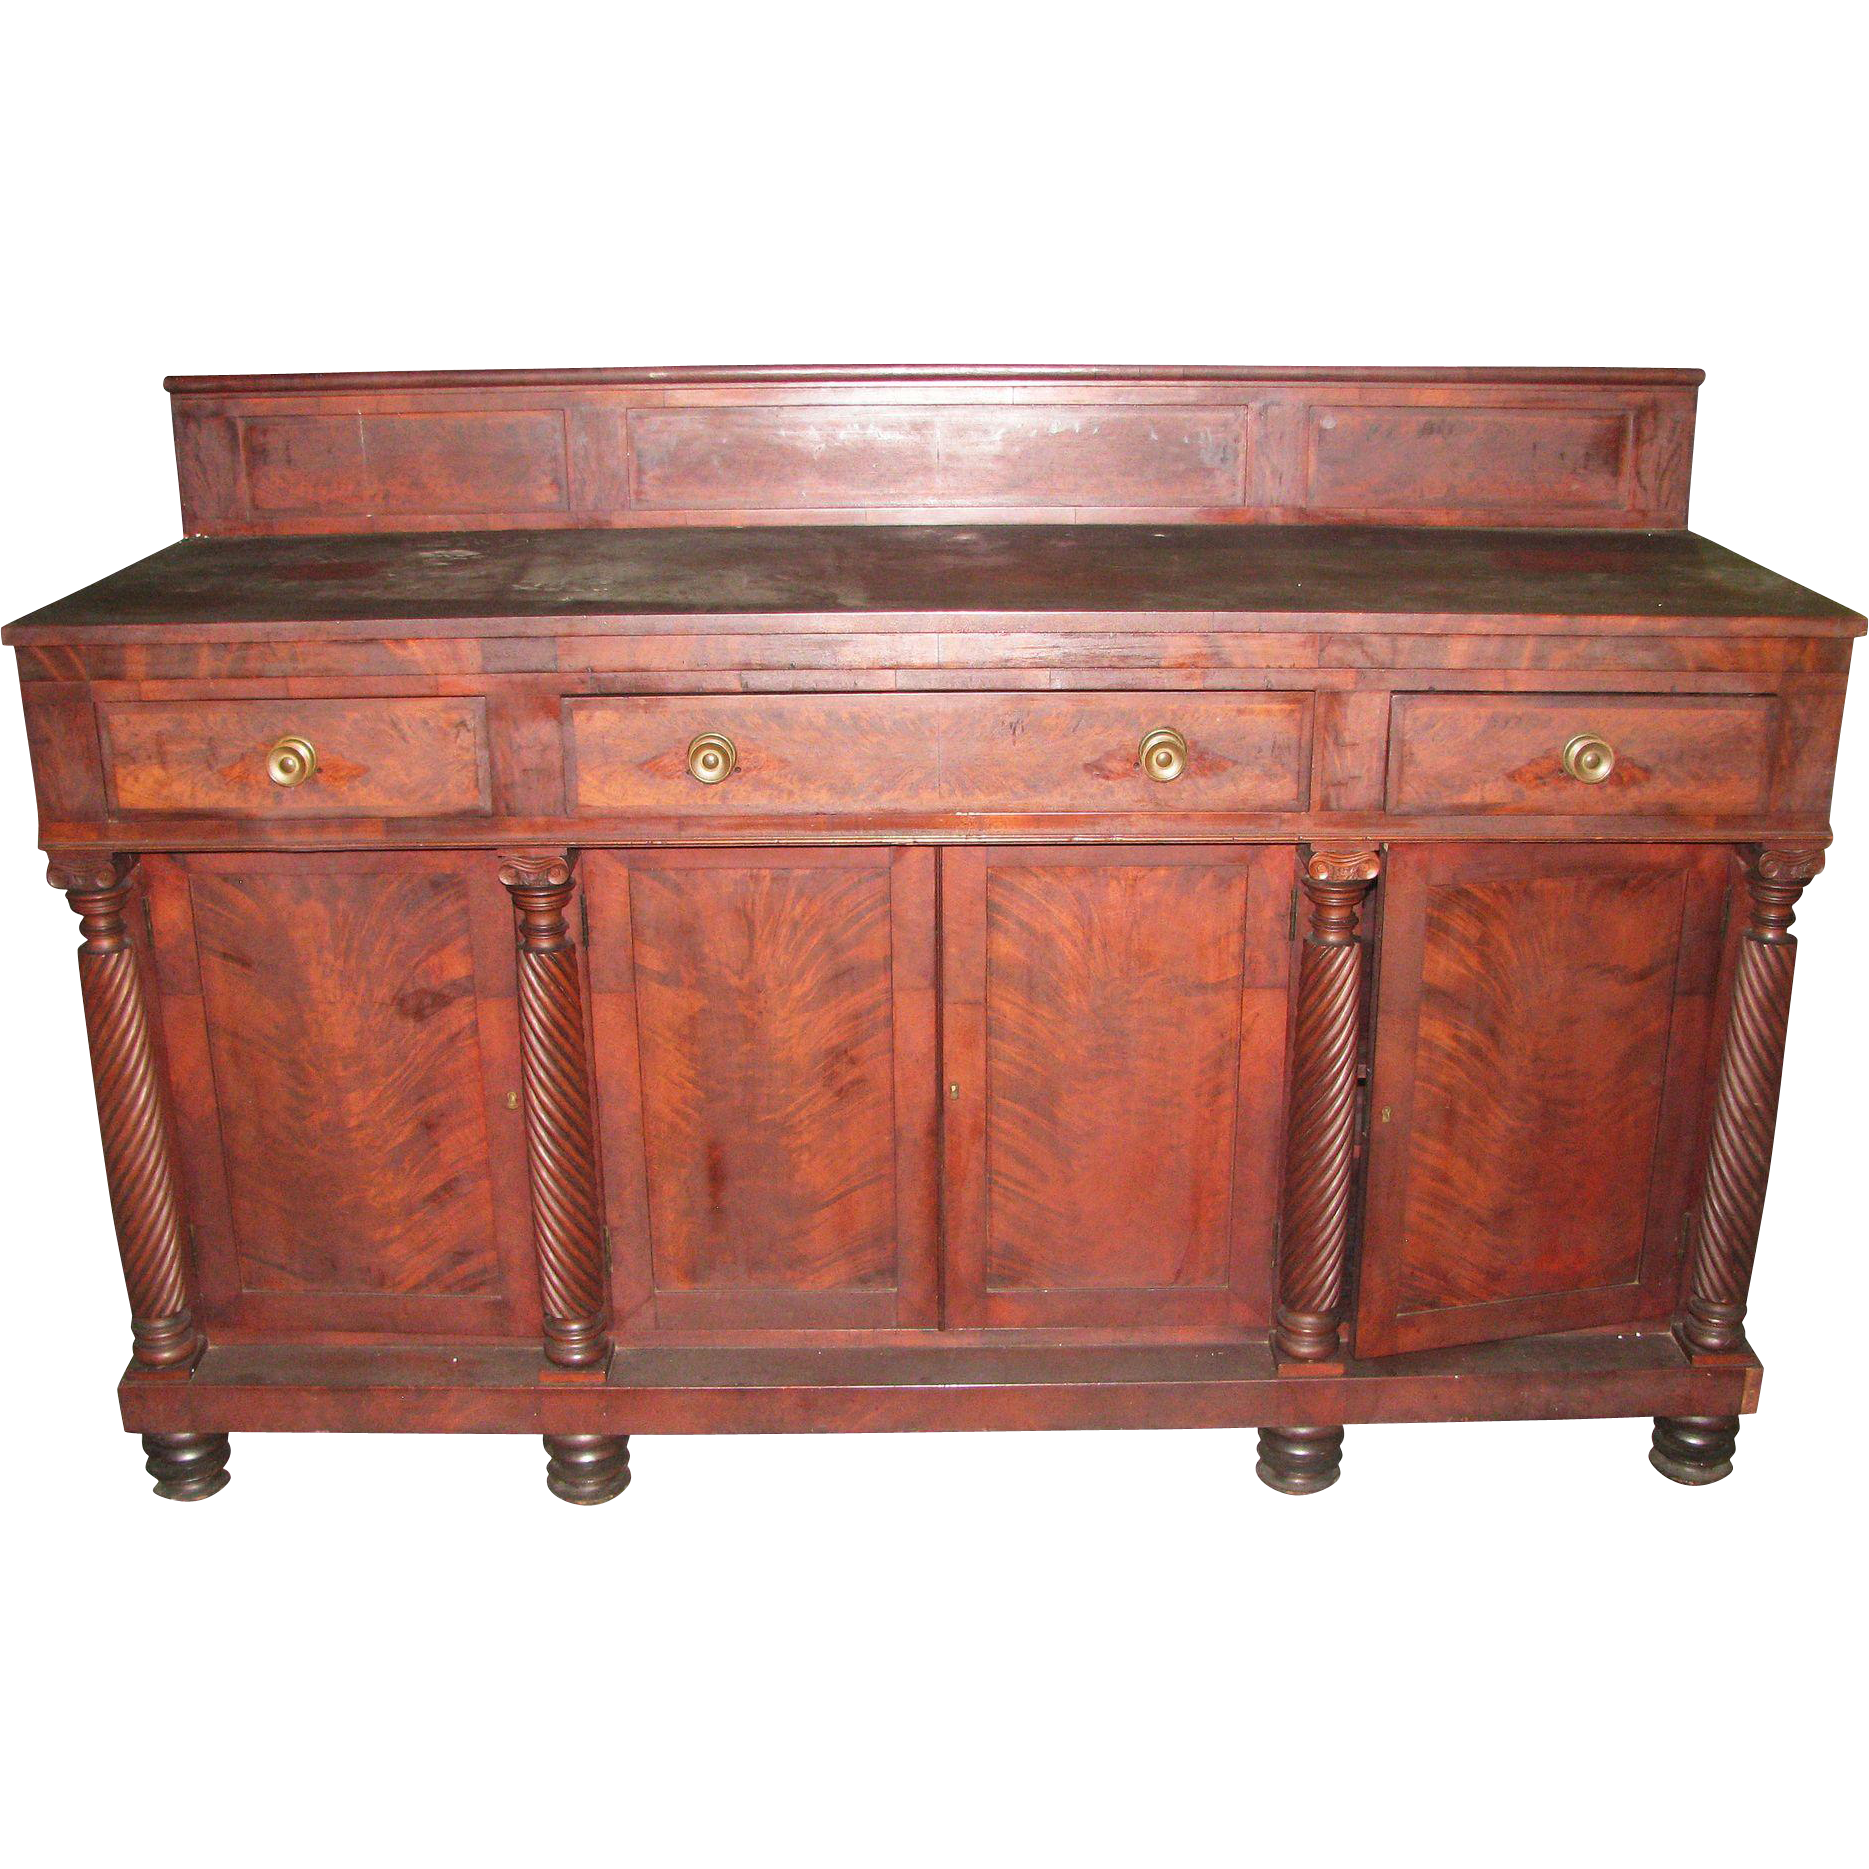 1850's Mahogany side bar